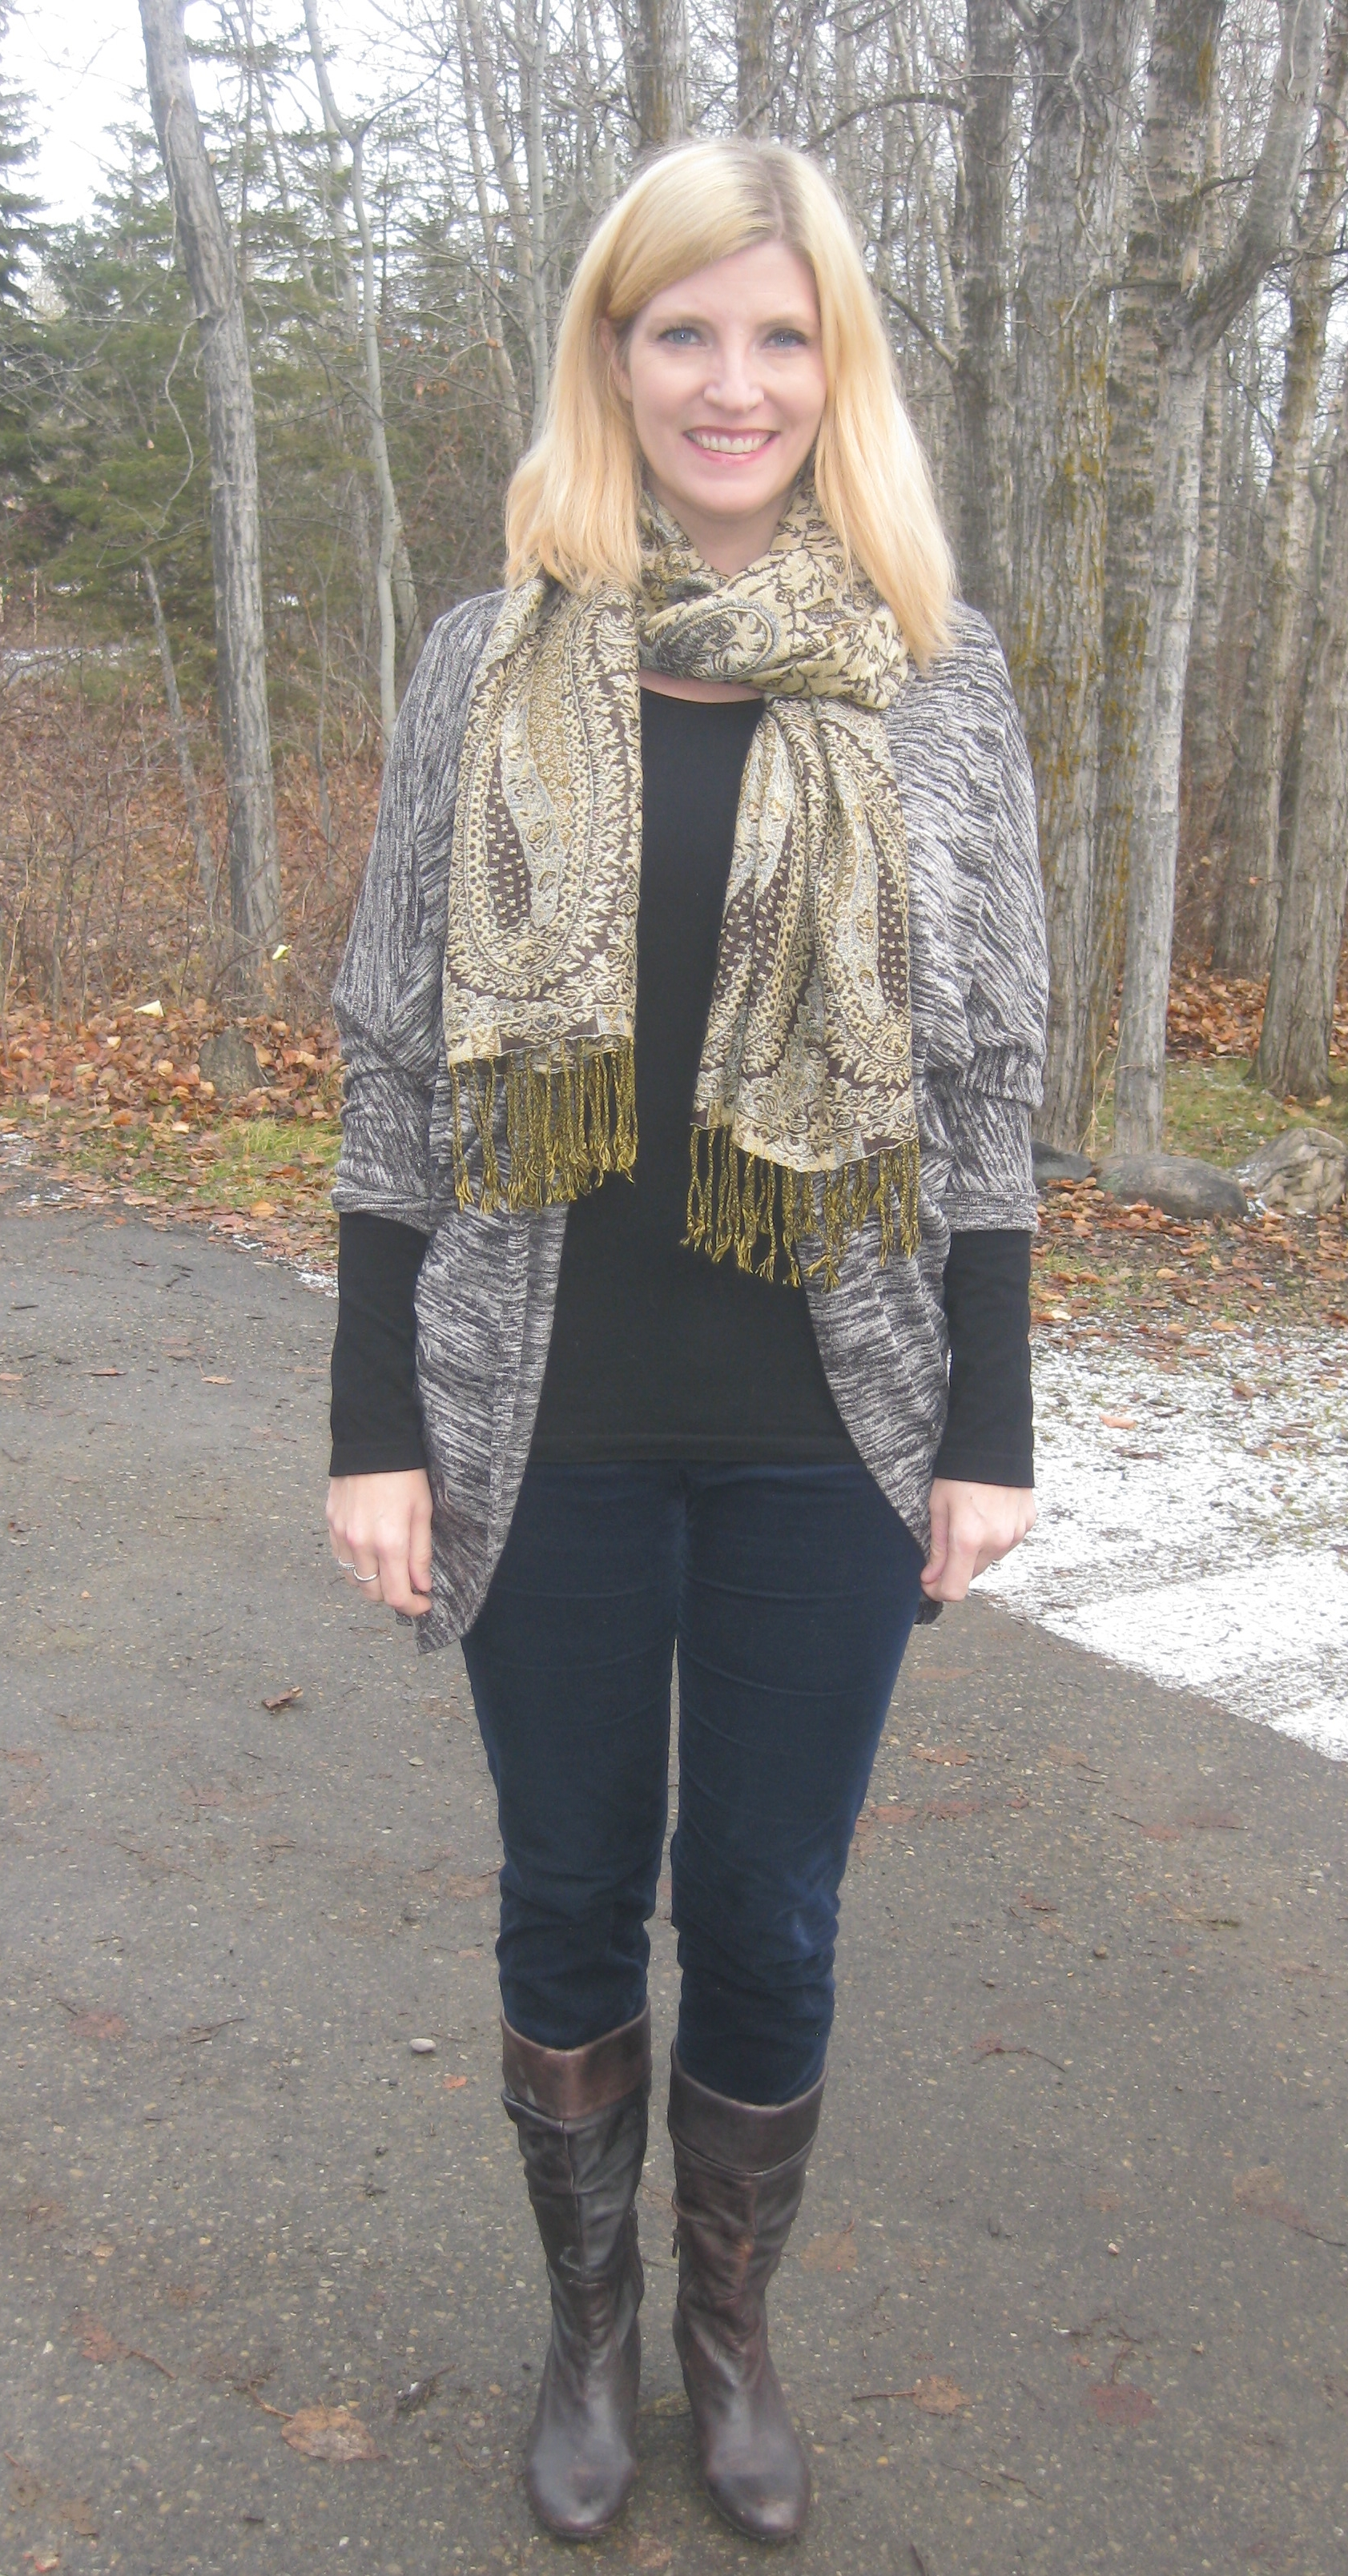 Cords $4.20, cardi free, pashmina $5, gifted black long sleeve C'est Moi tee, Arnold Churgin brown boots